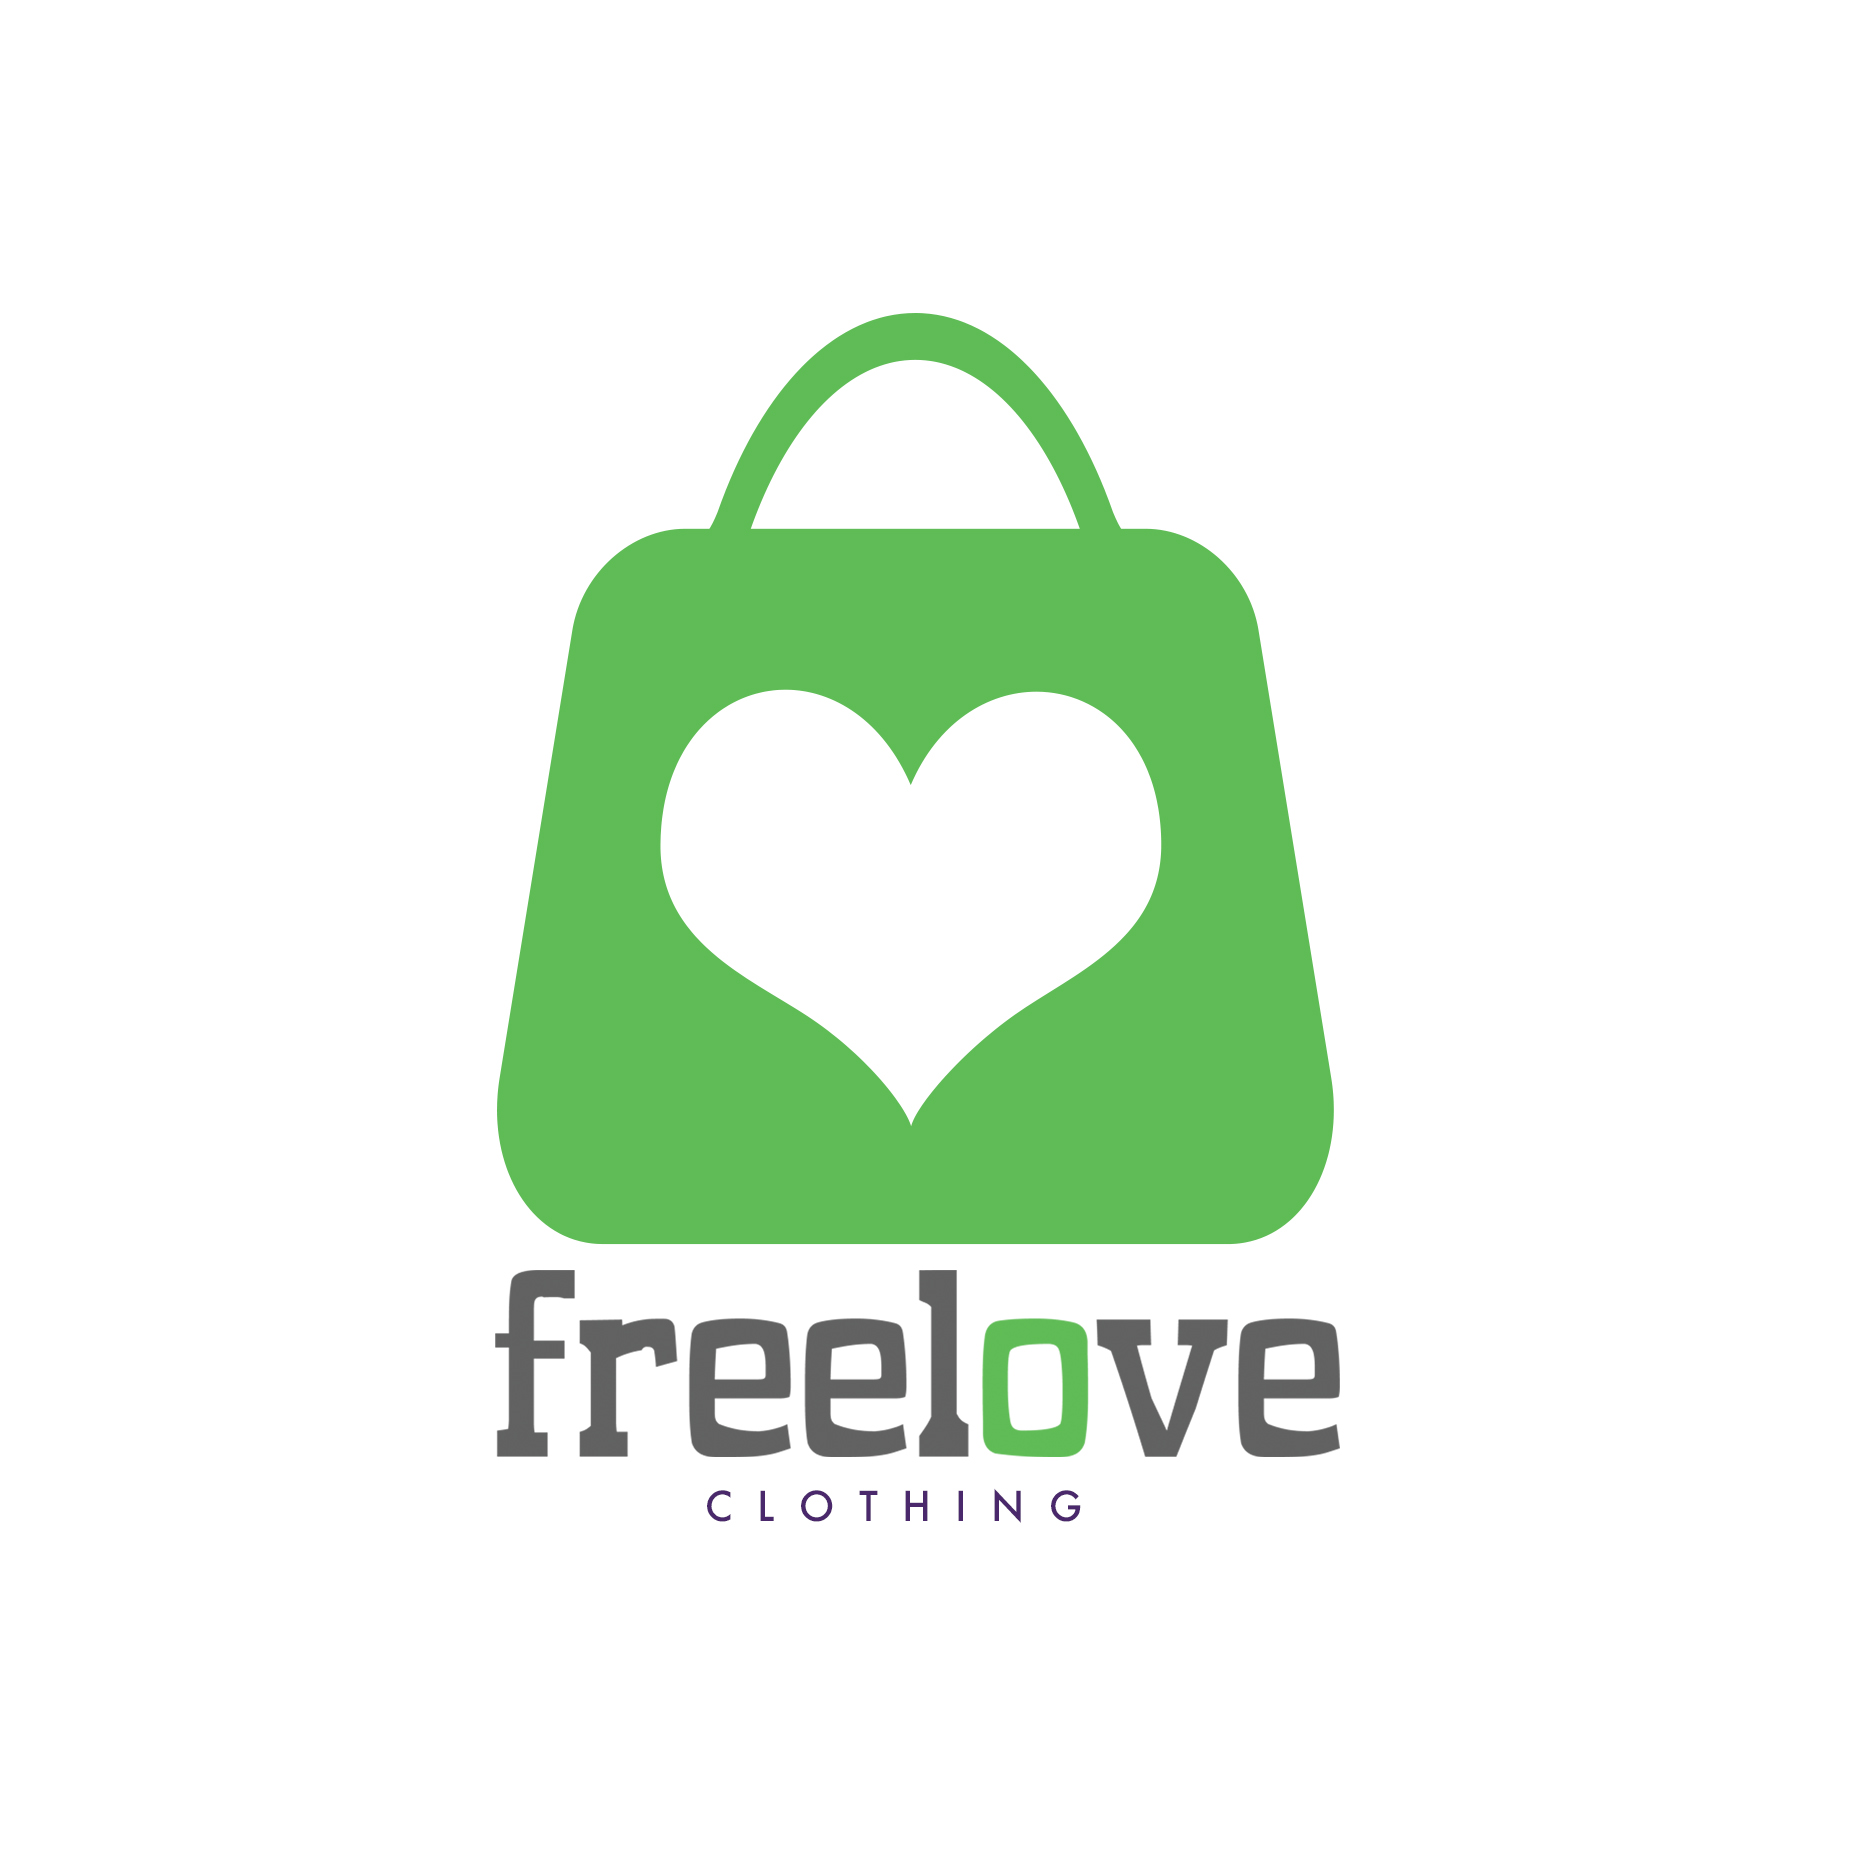 Freelove Clothing Logo • Branding